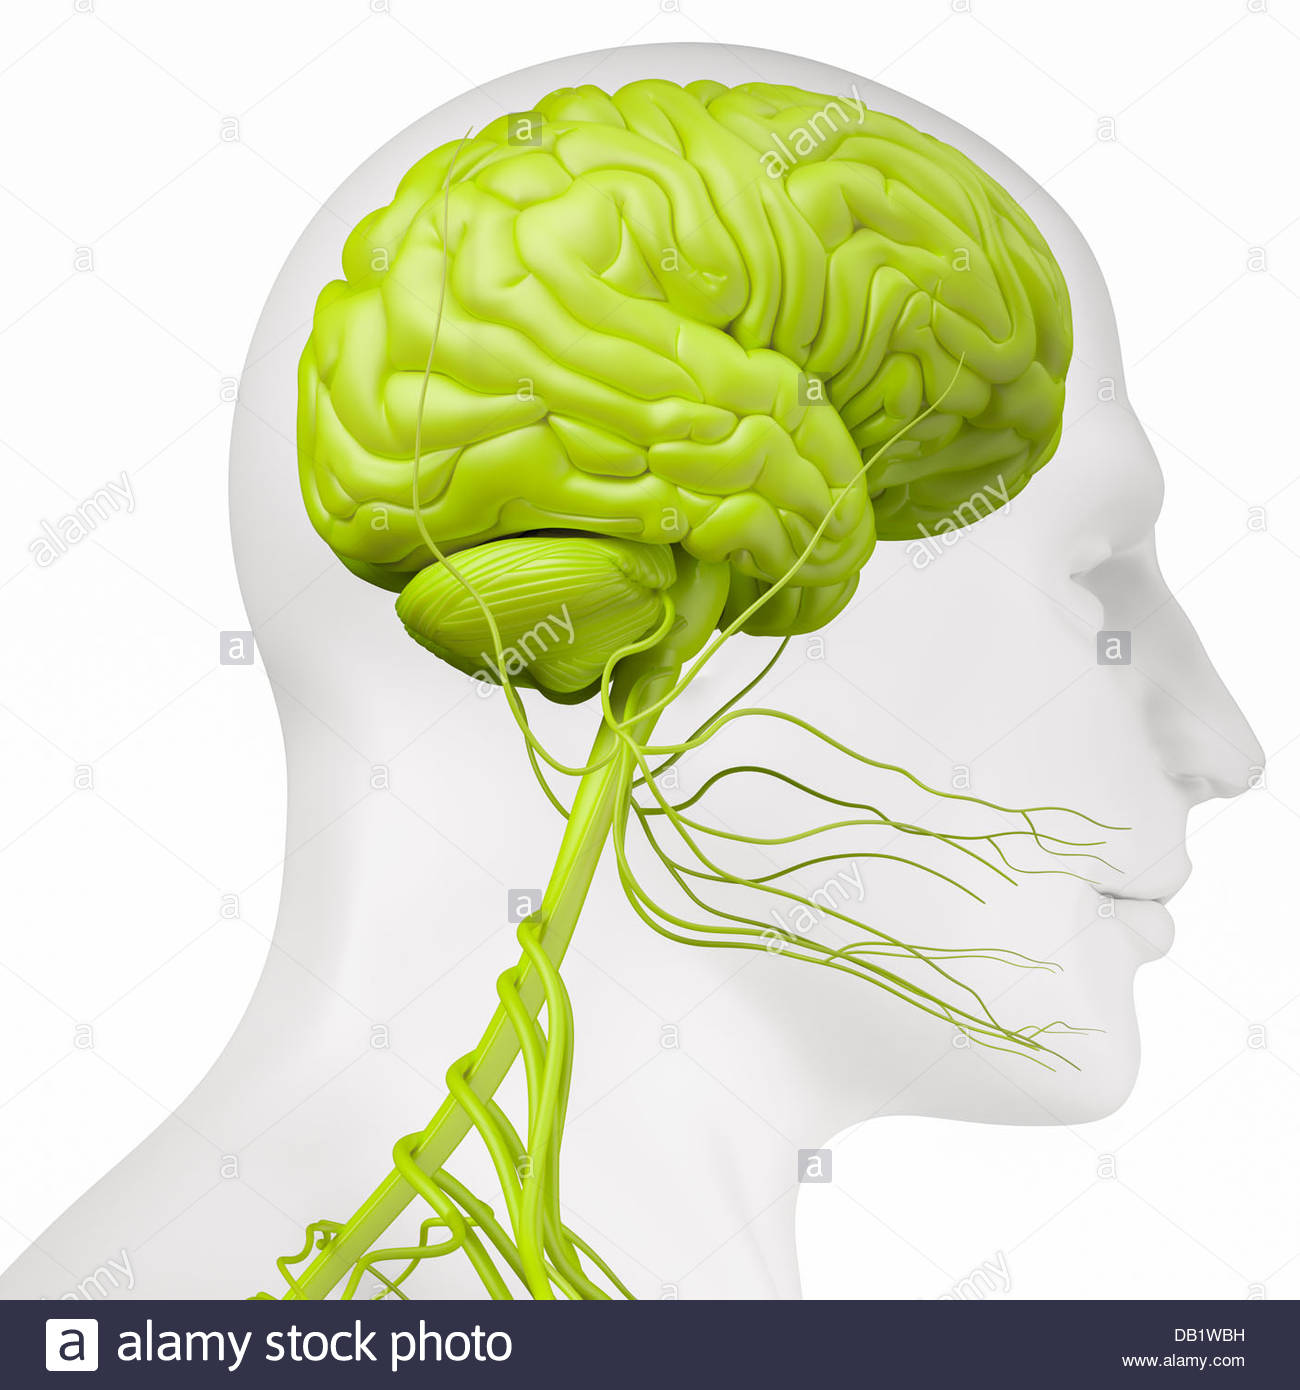 Digital medical illustration depicting the side view of the nervous system in the head and neck. - Stock Image